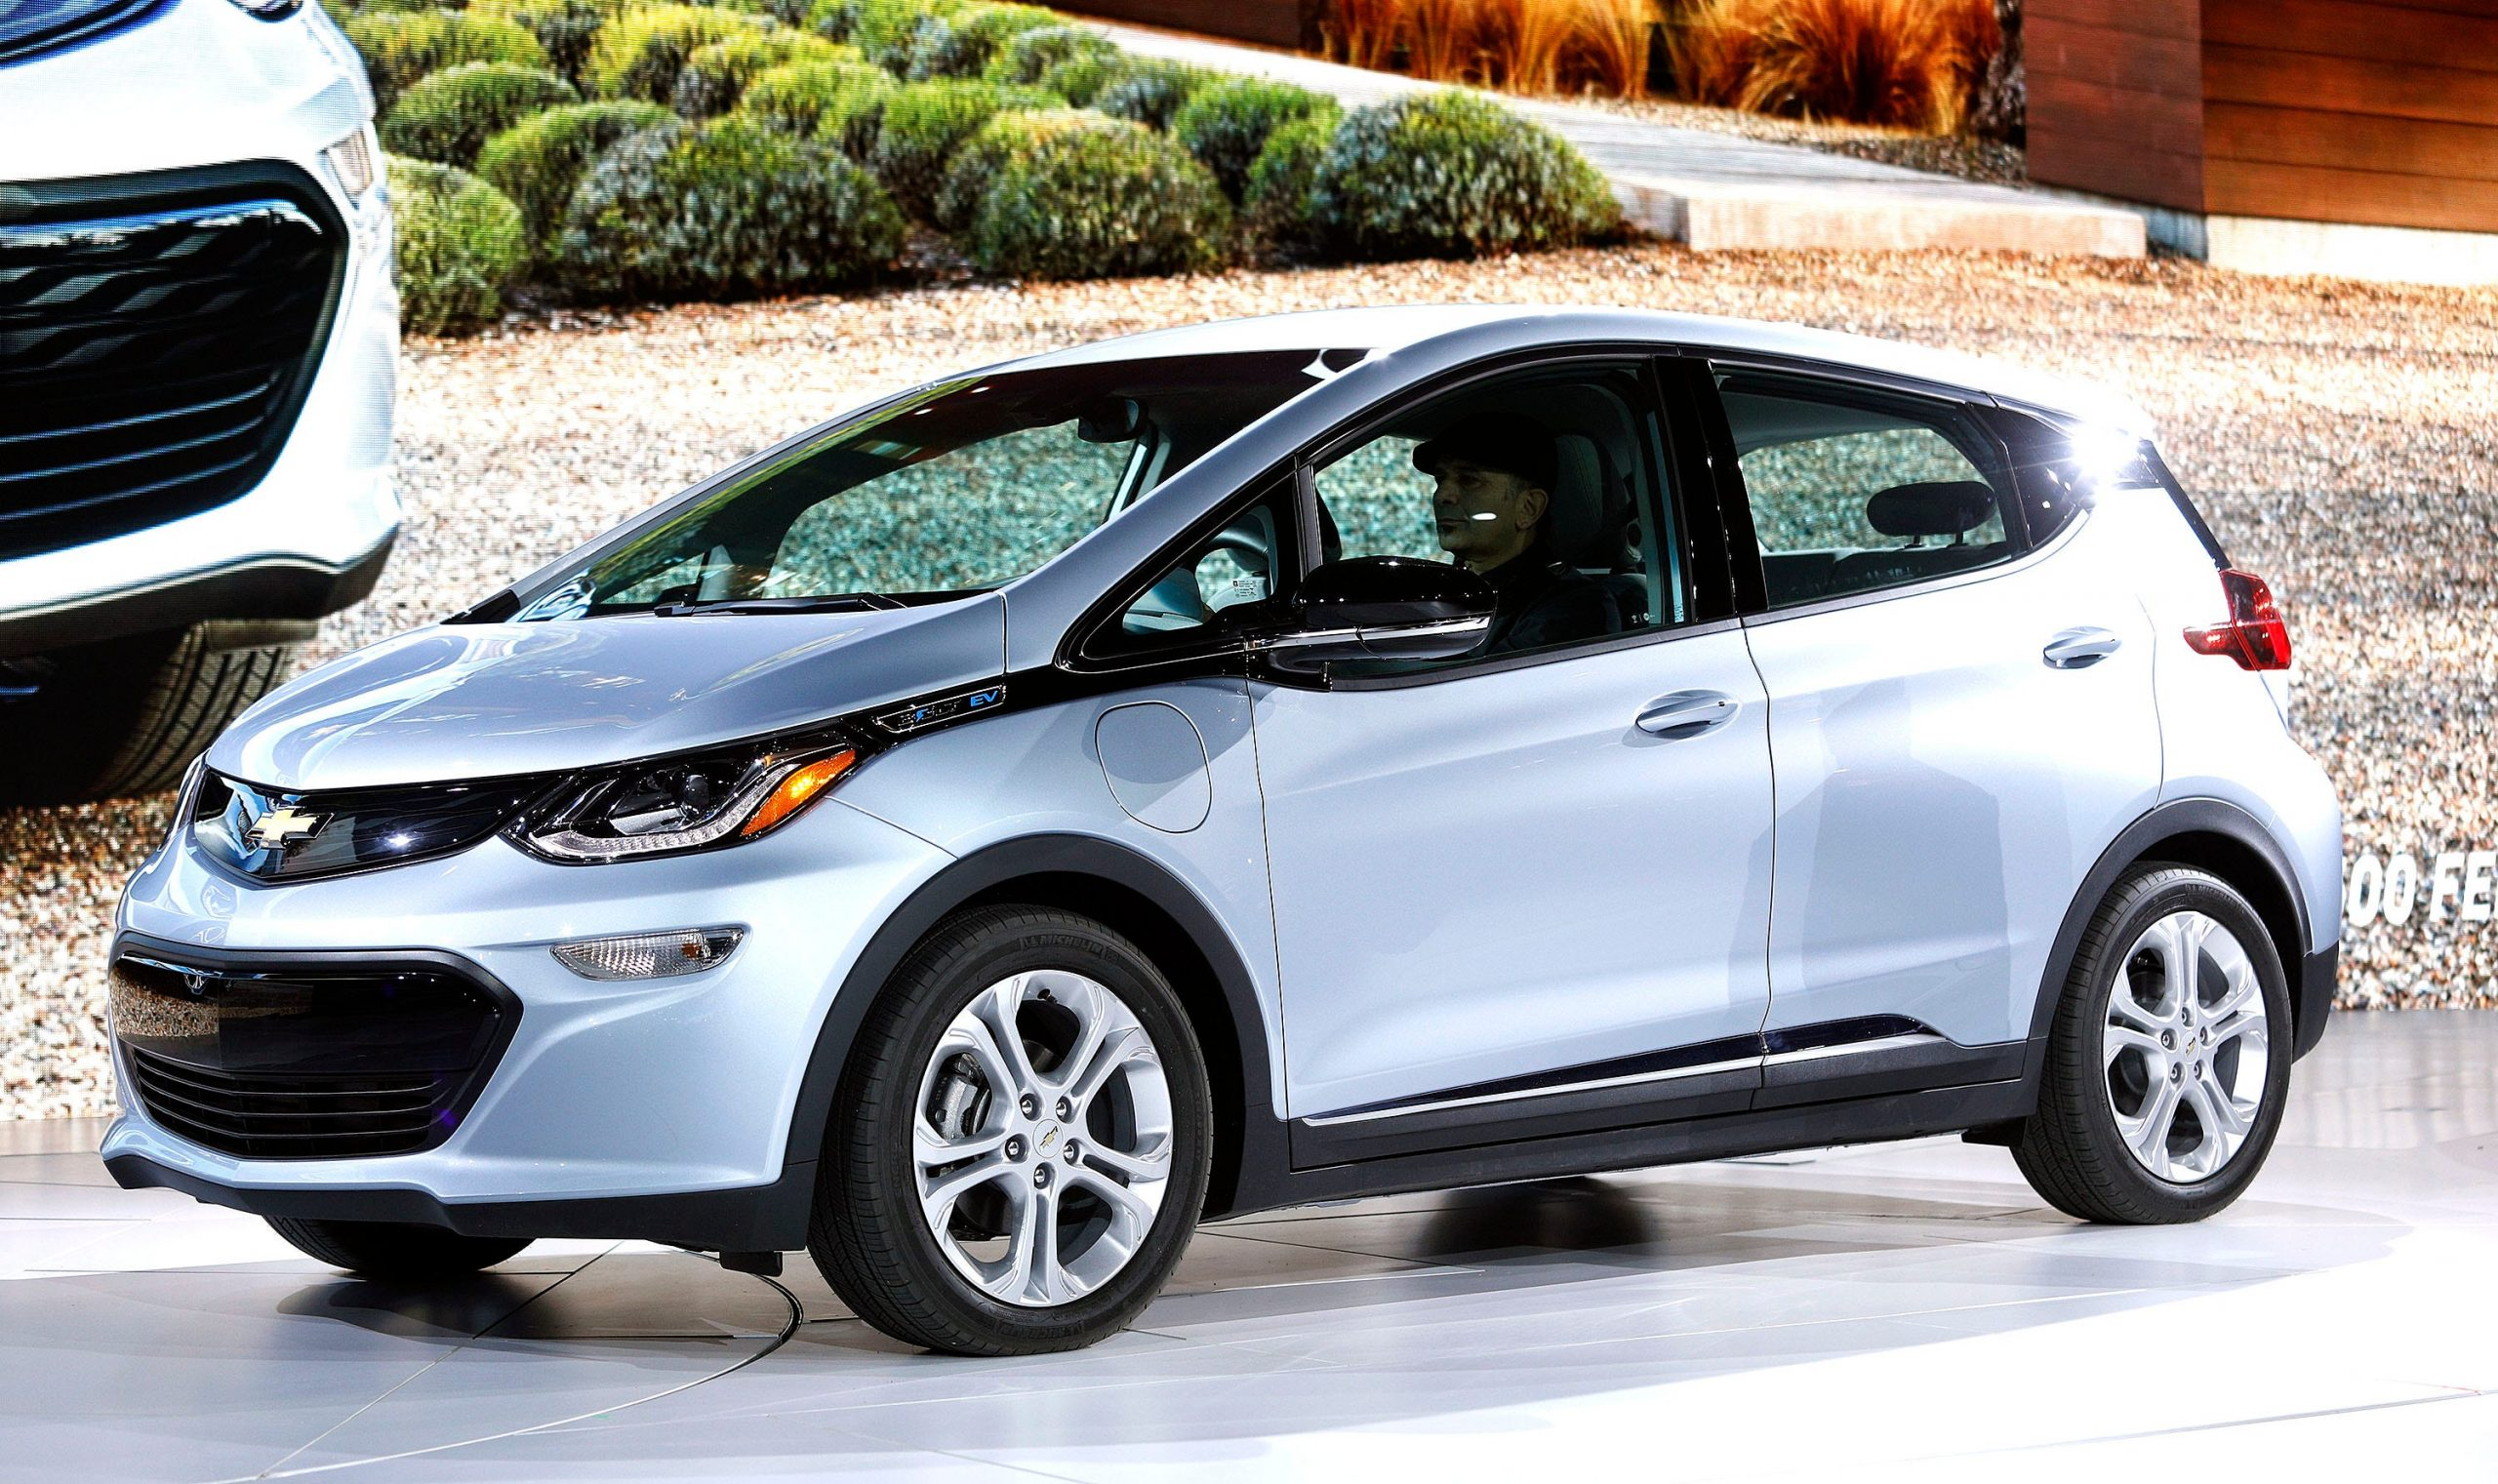 GM expands recall to all Chevy Bolt electric vehicles for fire risk